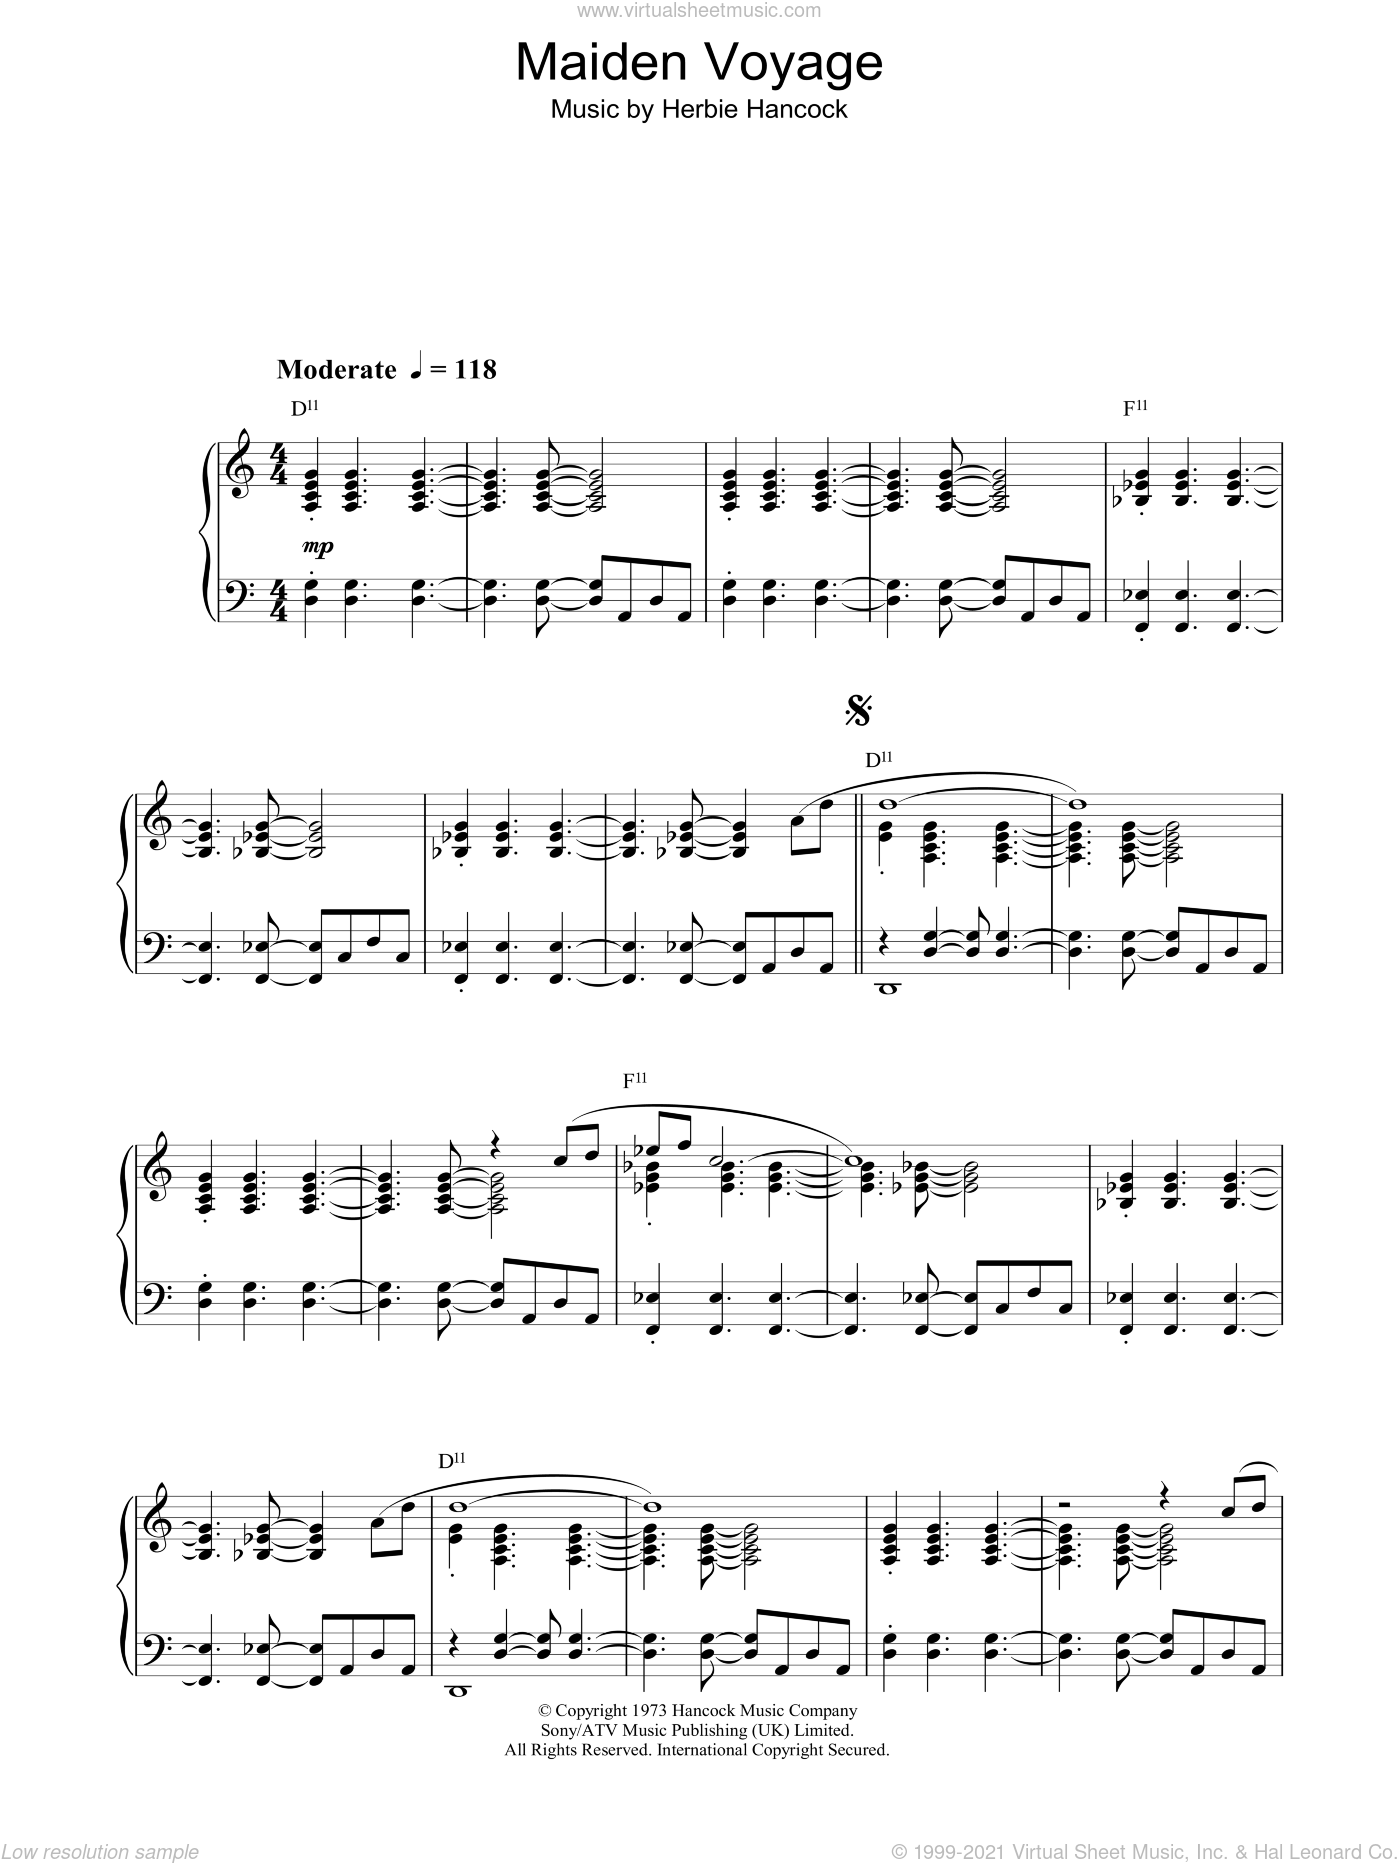 Maiden Voyage sheet music for piano solo by Herbie Hancock, intermediate skill level